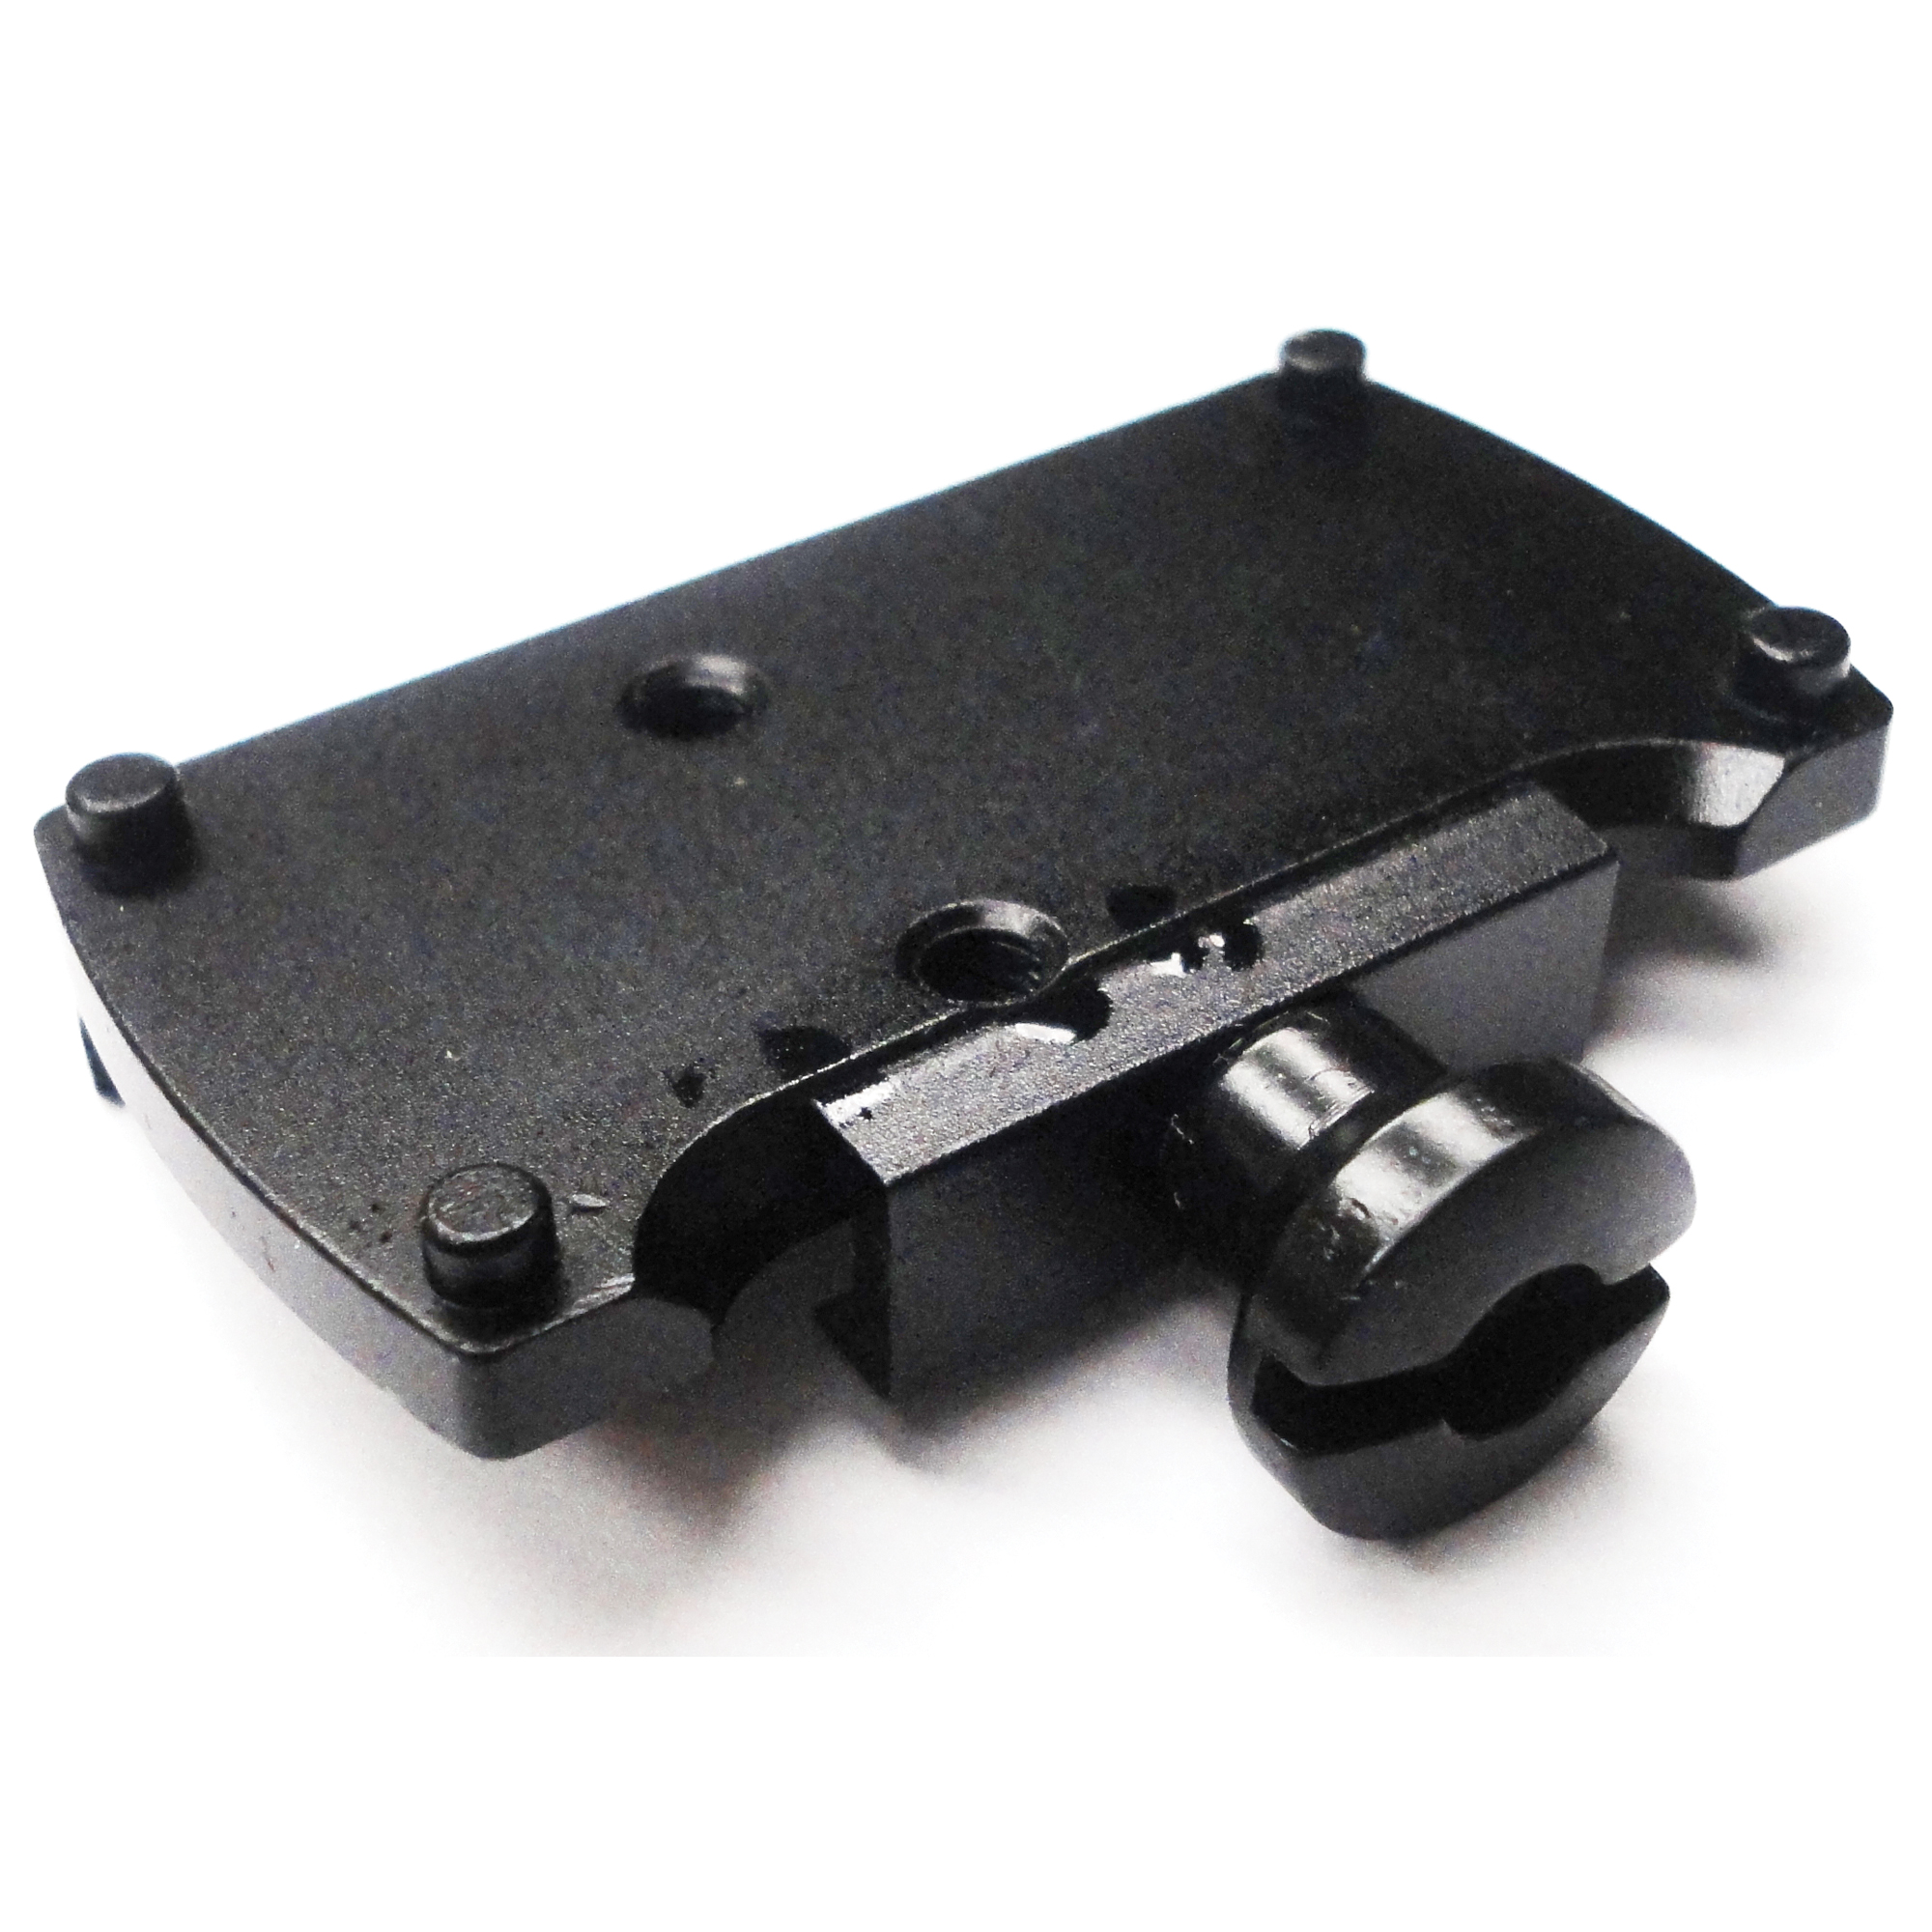 "These mounts allow any generation FastFire(TM) Series red dot sight to be securely mounted on a specific firearm. Options are available for mounting to handguns"" rifles"" and shotguns"" which each have different mounting requirements."